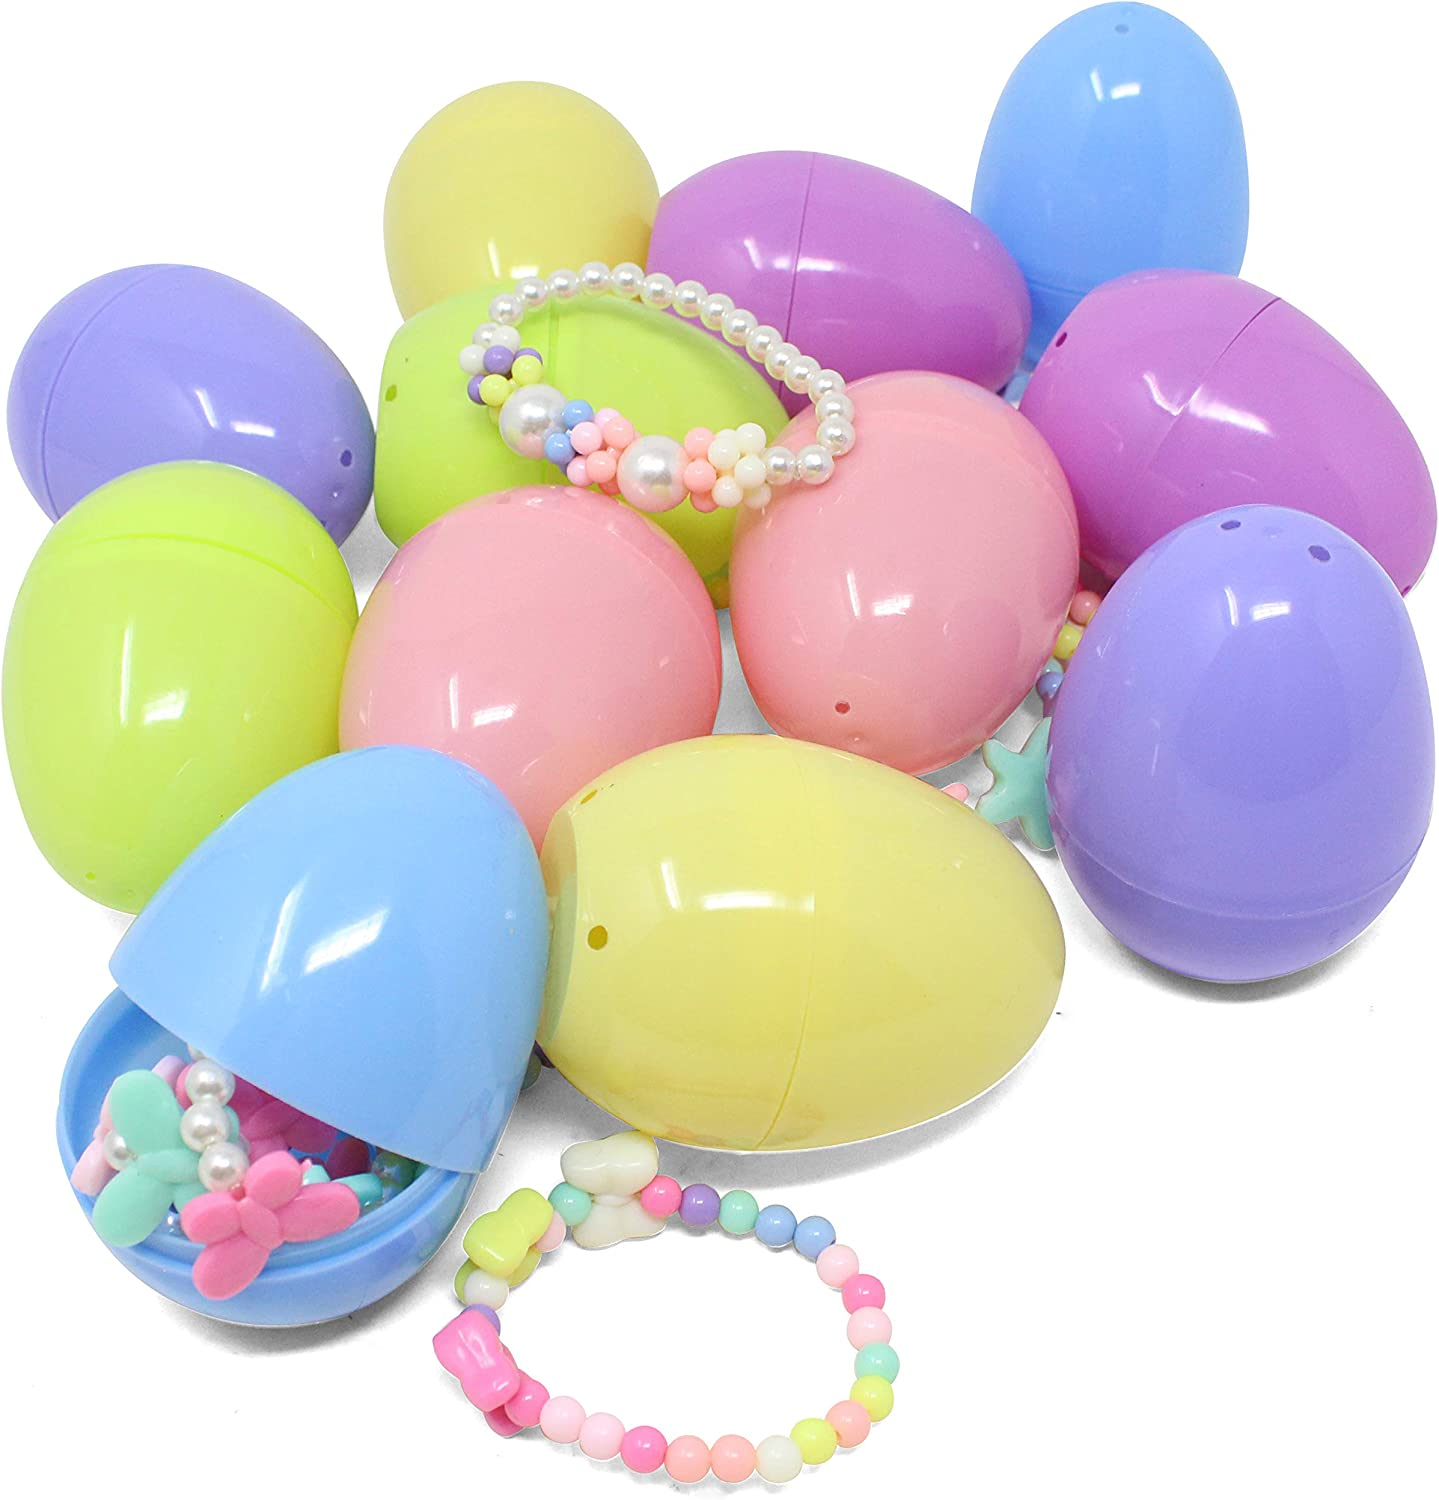 JOYIN 12 Pre-Filled Easter Eggs with 12 Different Designs of Necklaces and 12 Bracelets Girls Jewelry Set Easter Basket Stuffer Prefilled Easter Egg for Girls